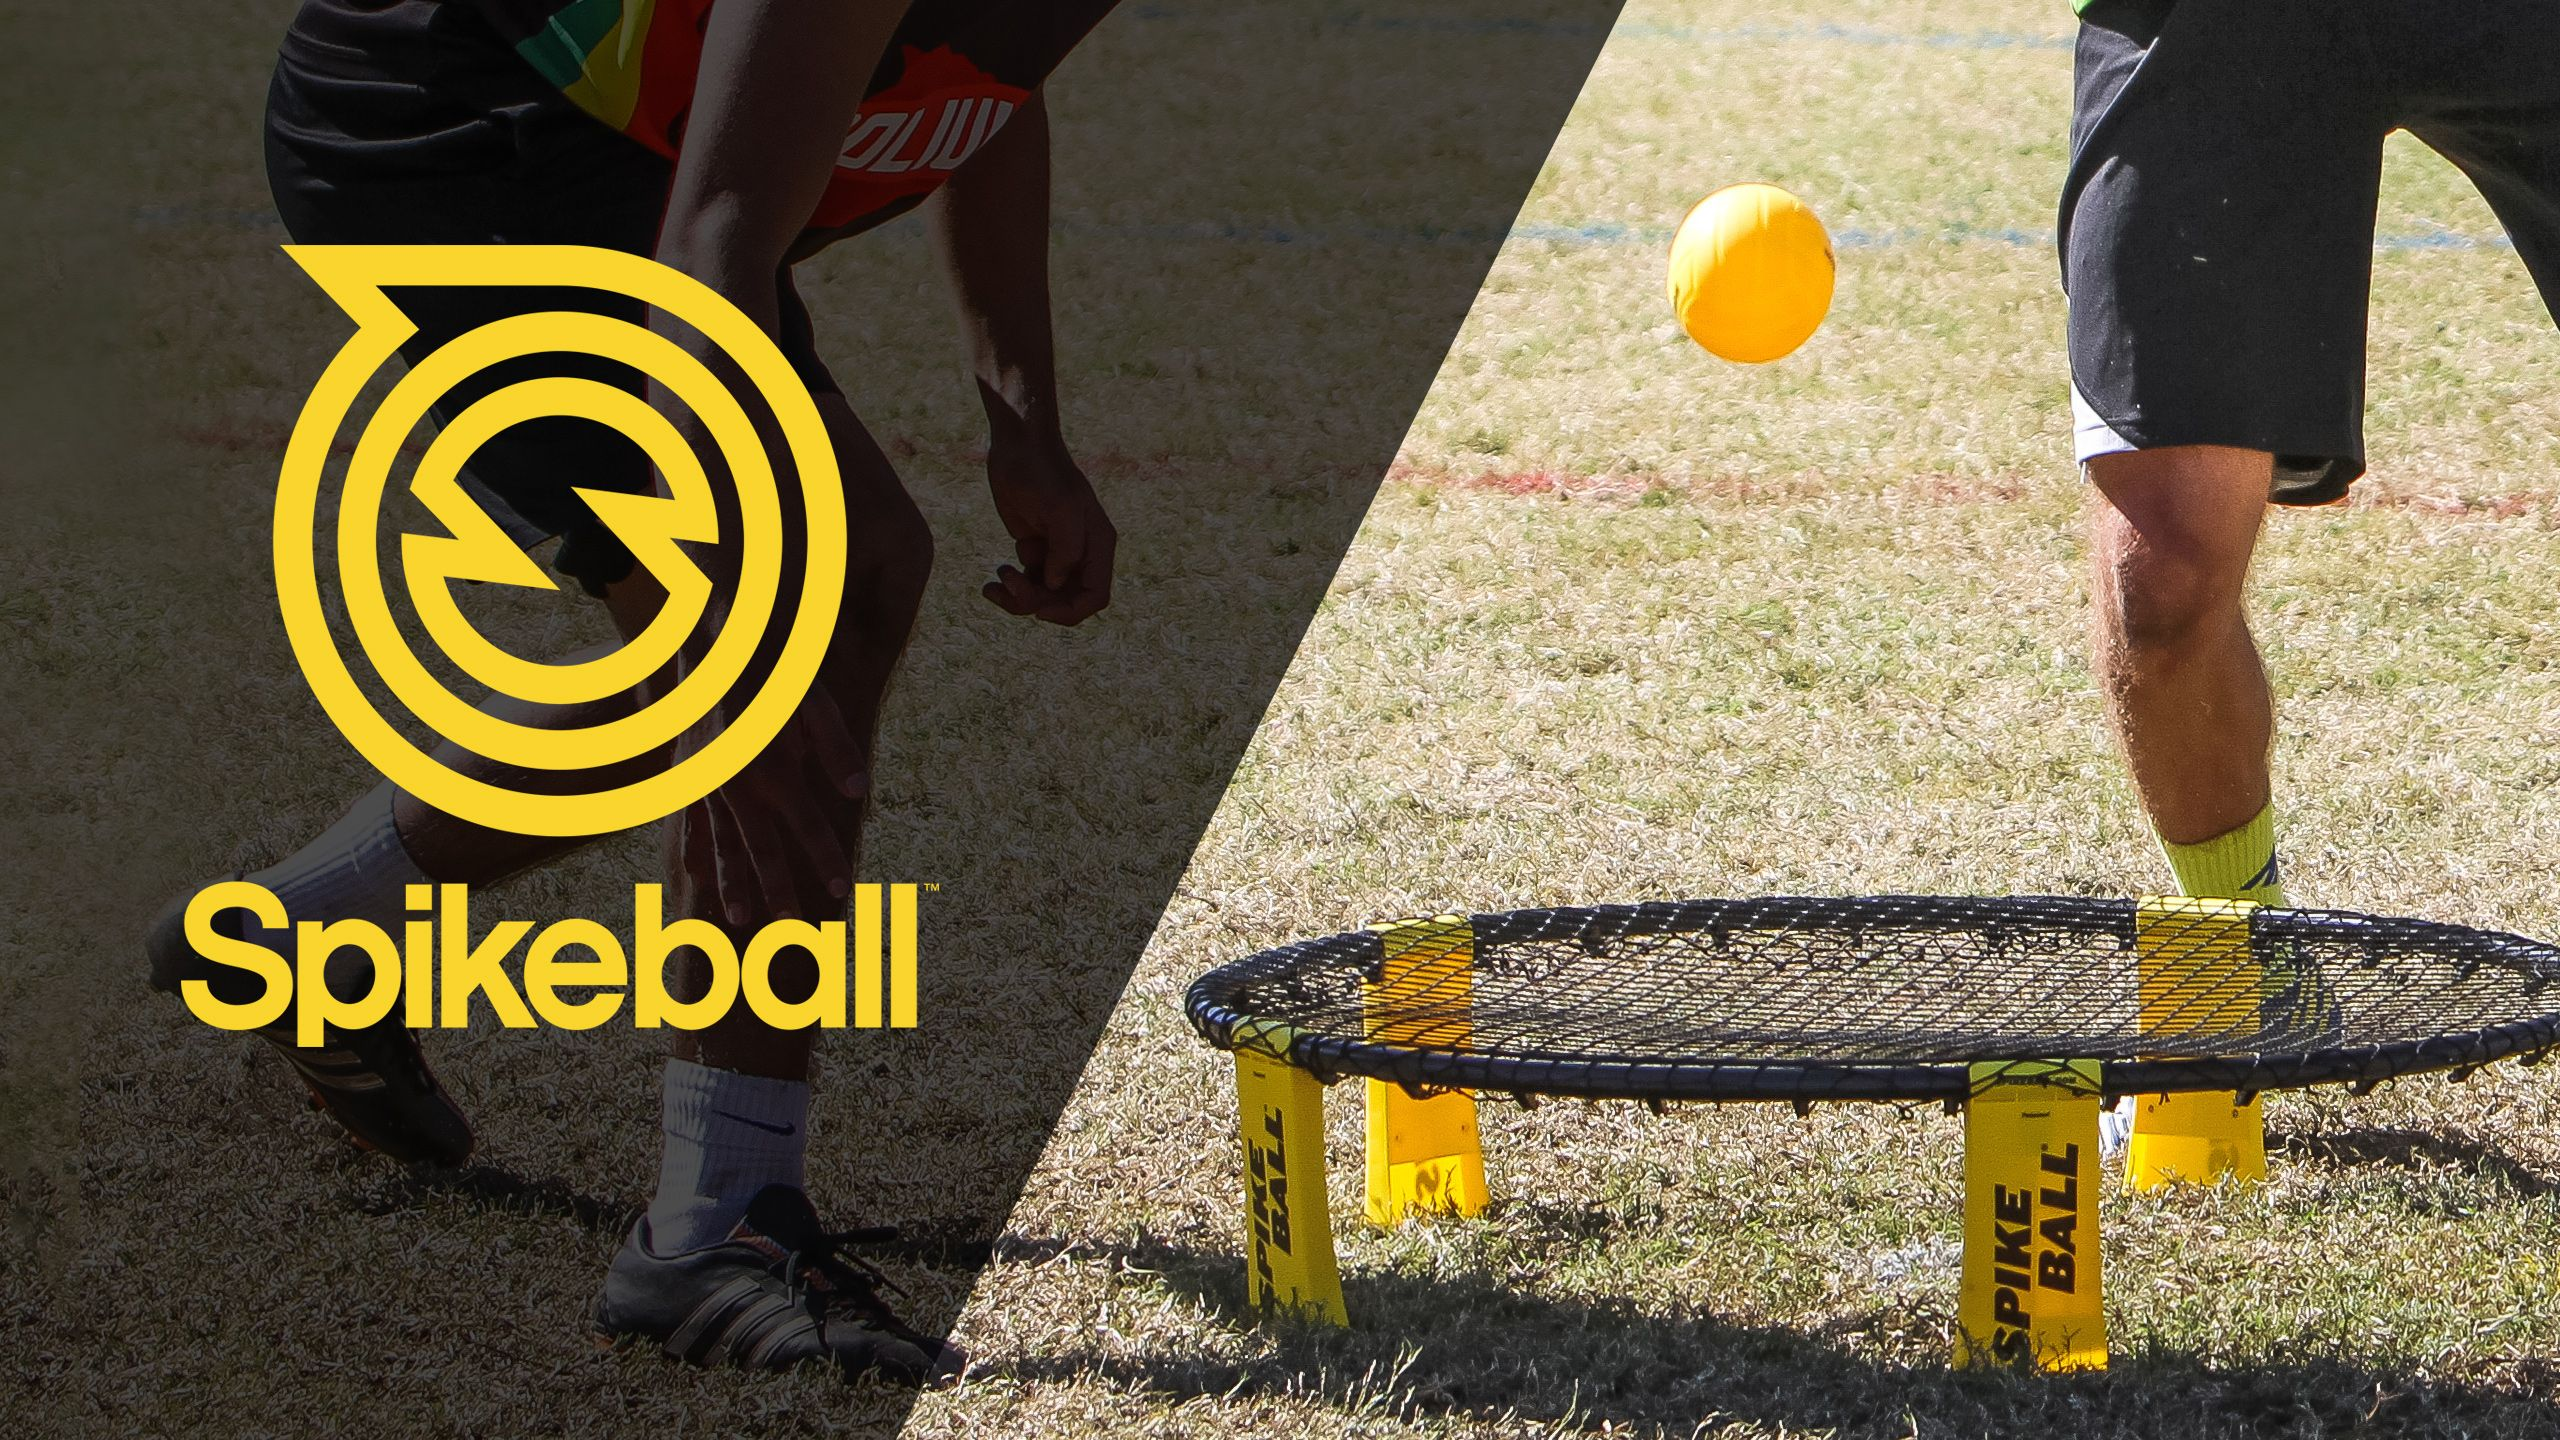 Spikeball's SummerSpike presented by Landshark